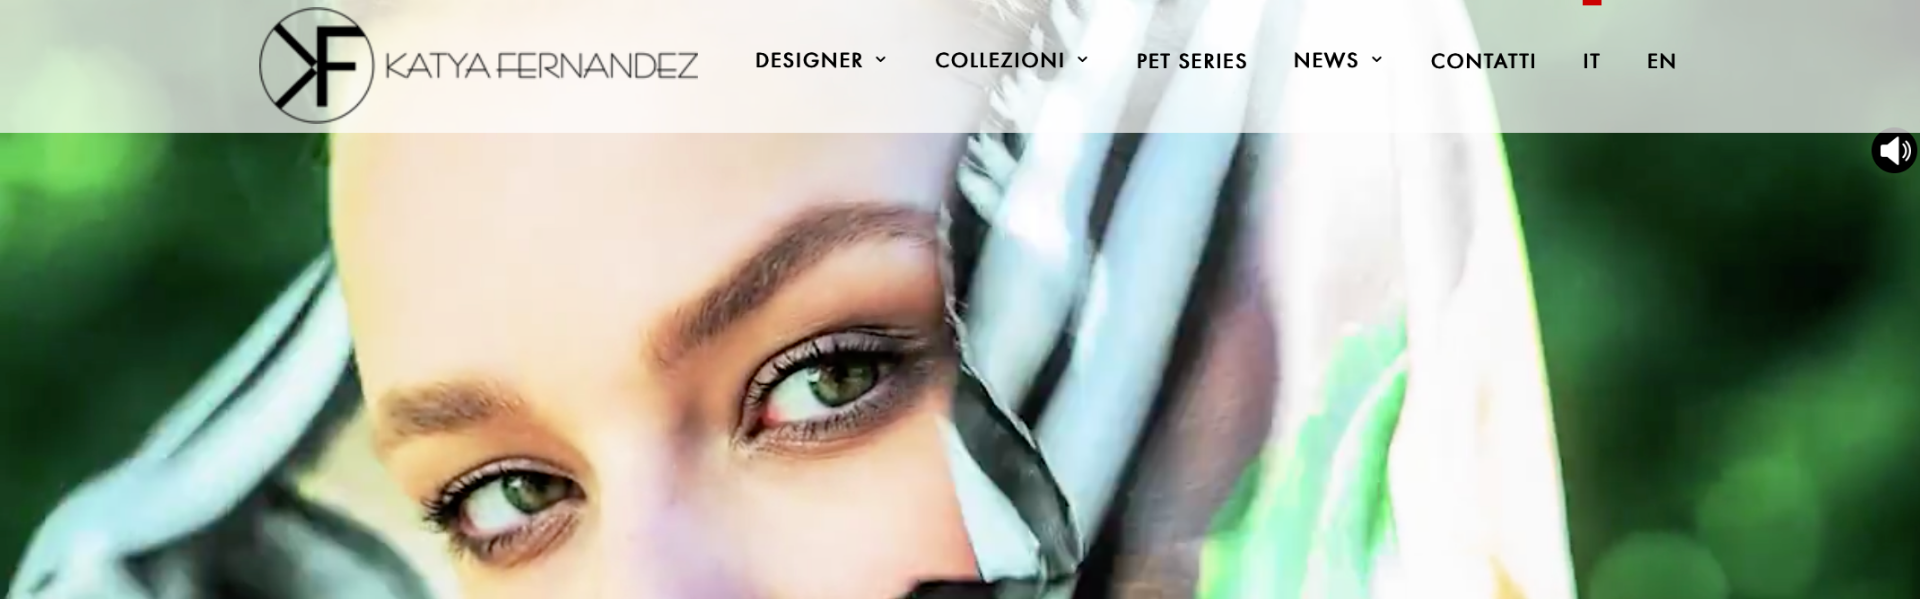 <span>Launch</span> of the New Katya Fernandez<span> Web Site</span> for the celebration of the brand 30th anniversary. May/2020